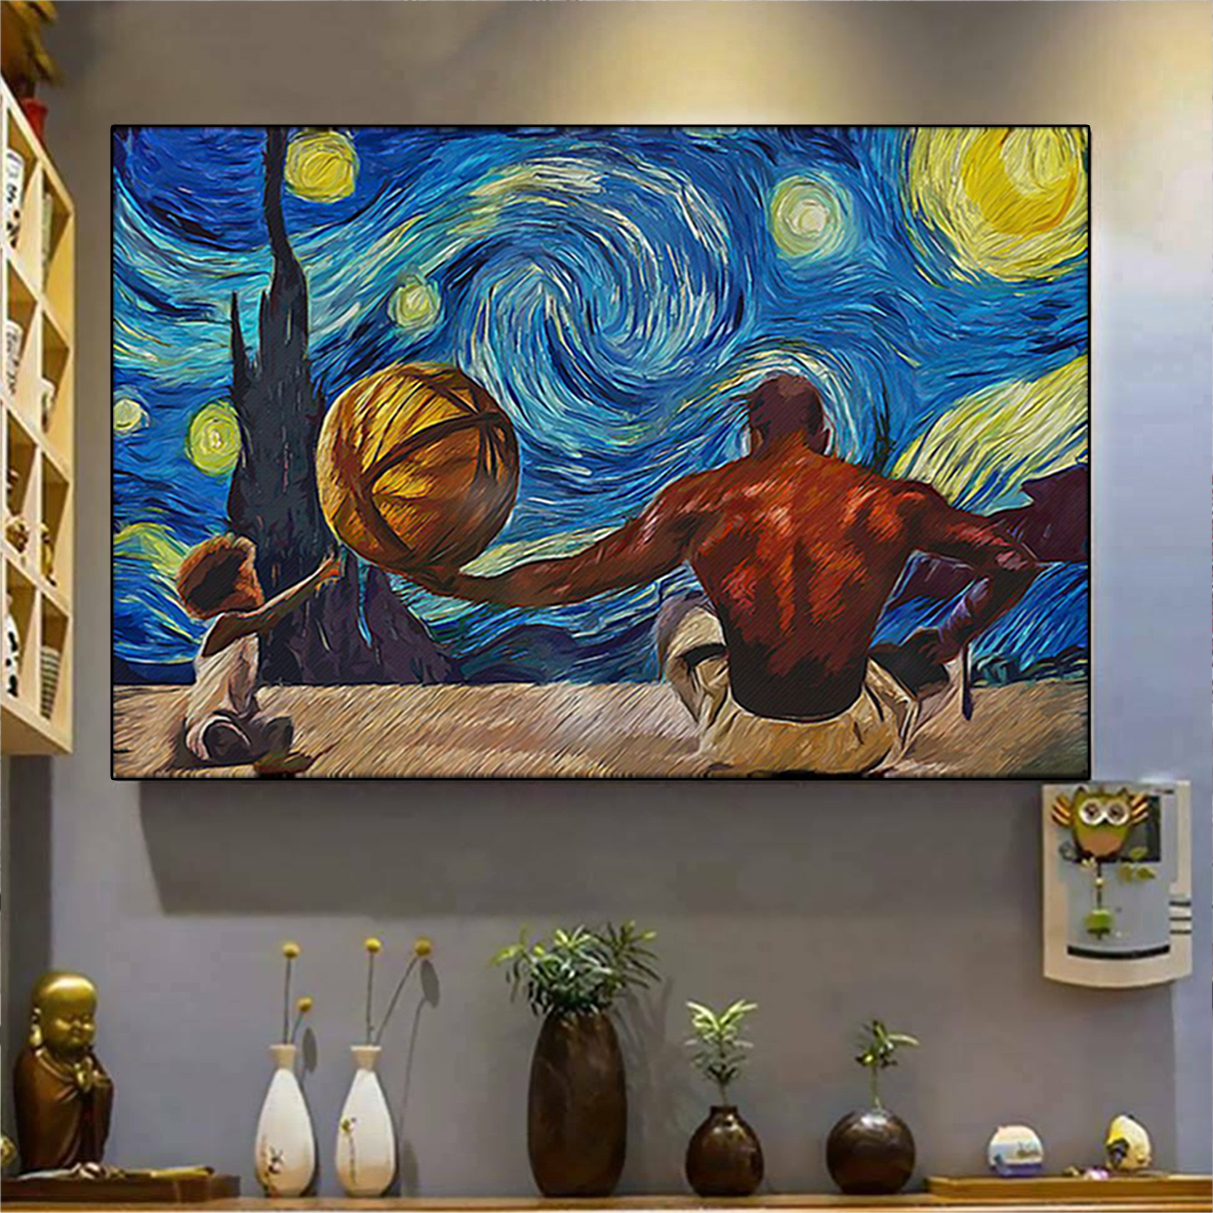 Black father and son starry night van gogh poster A2